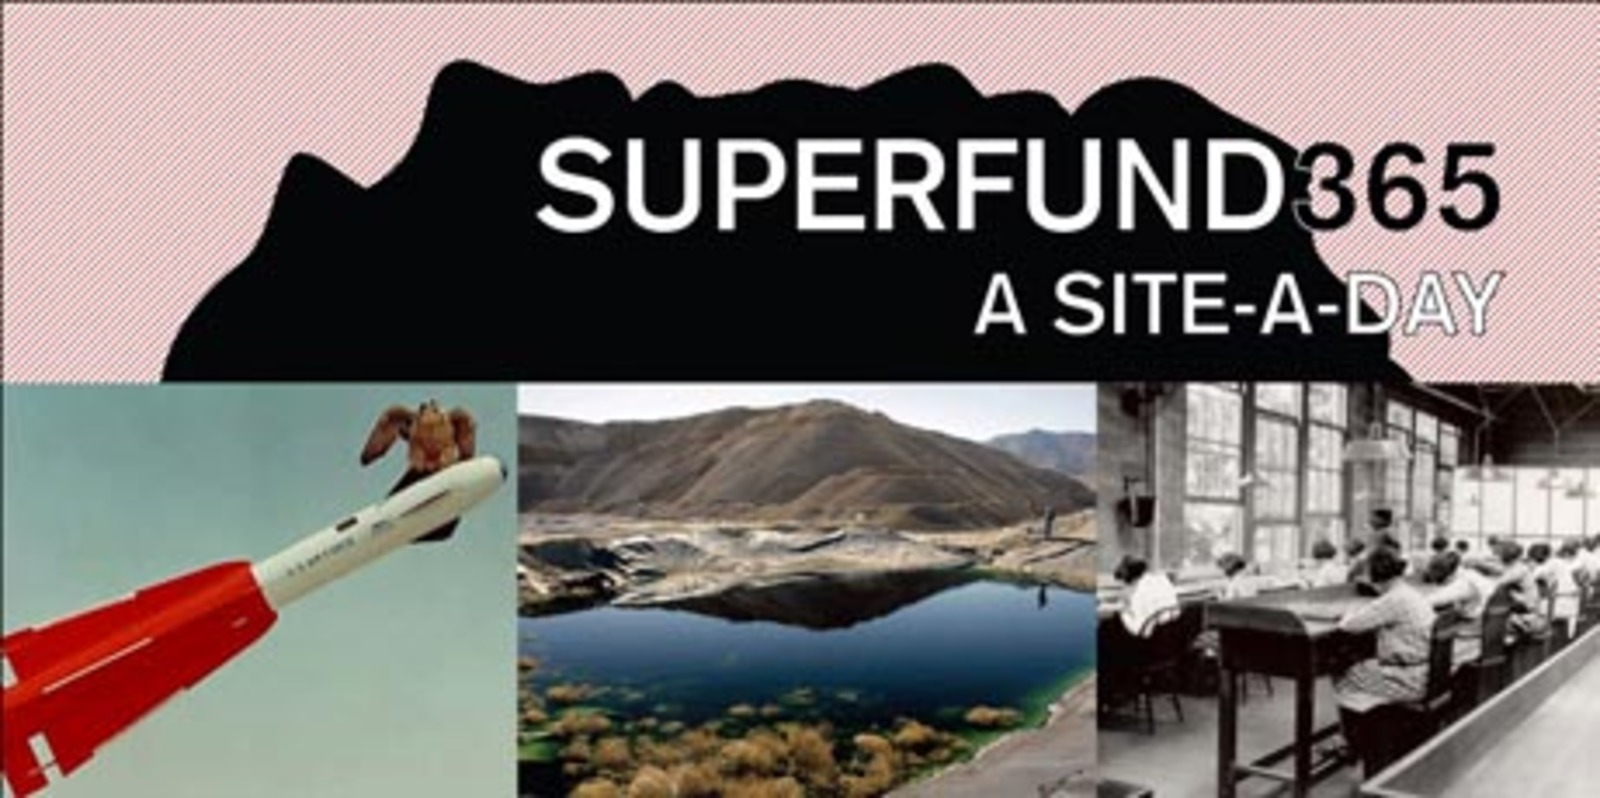 Superfund 365 Cool Hunting